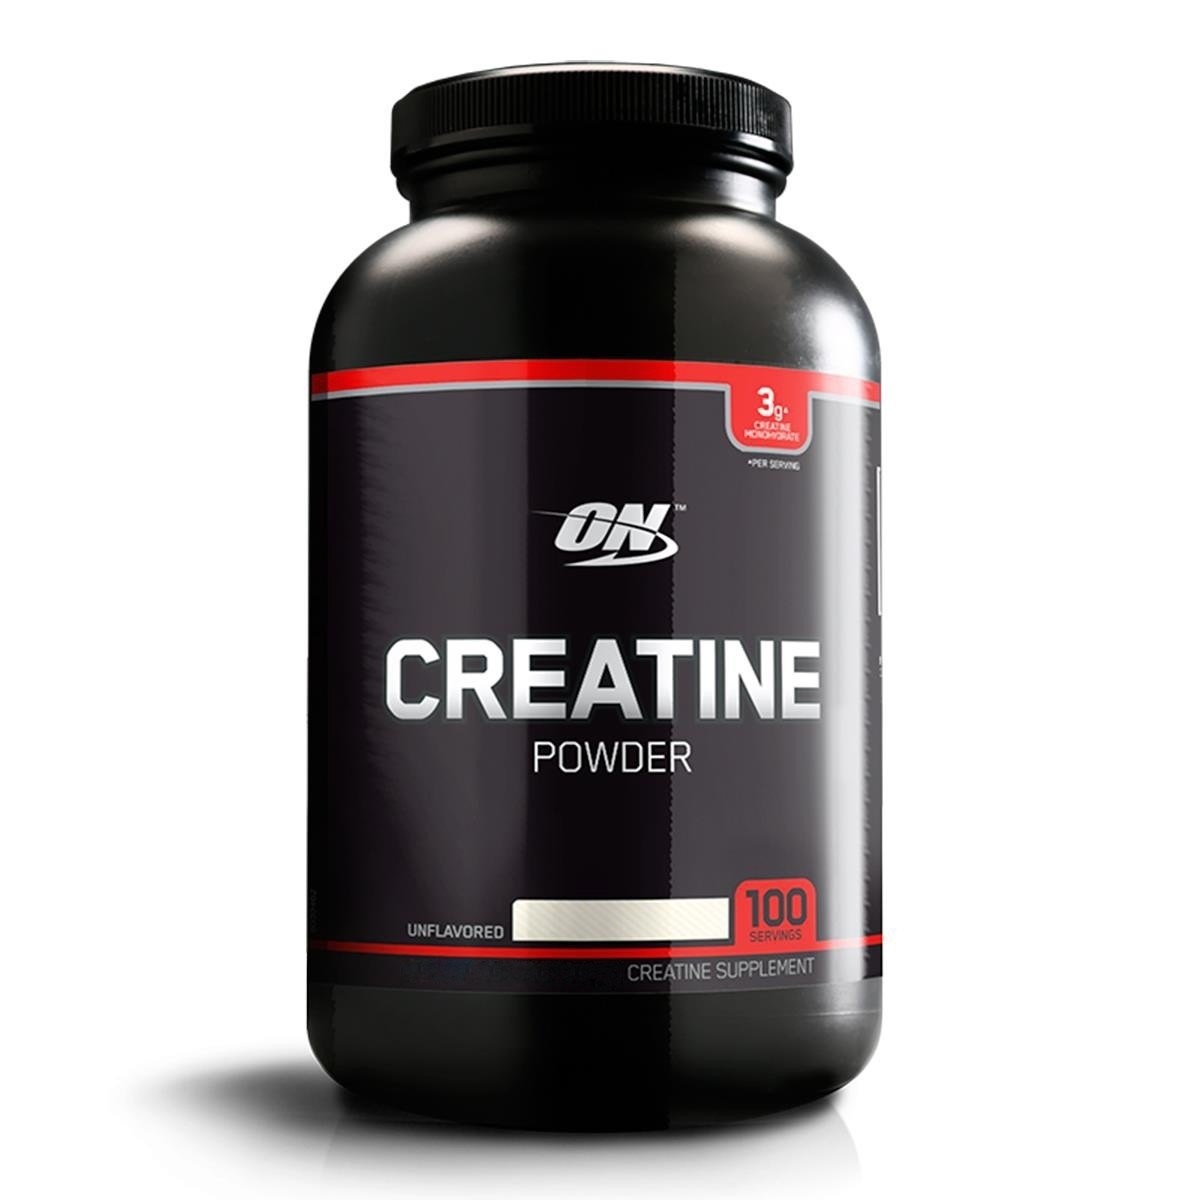 how to eat creatine powder